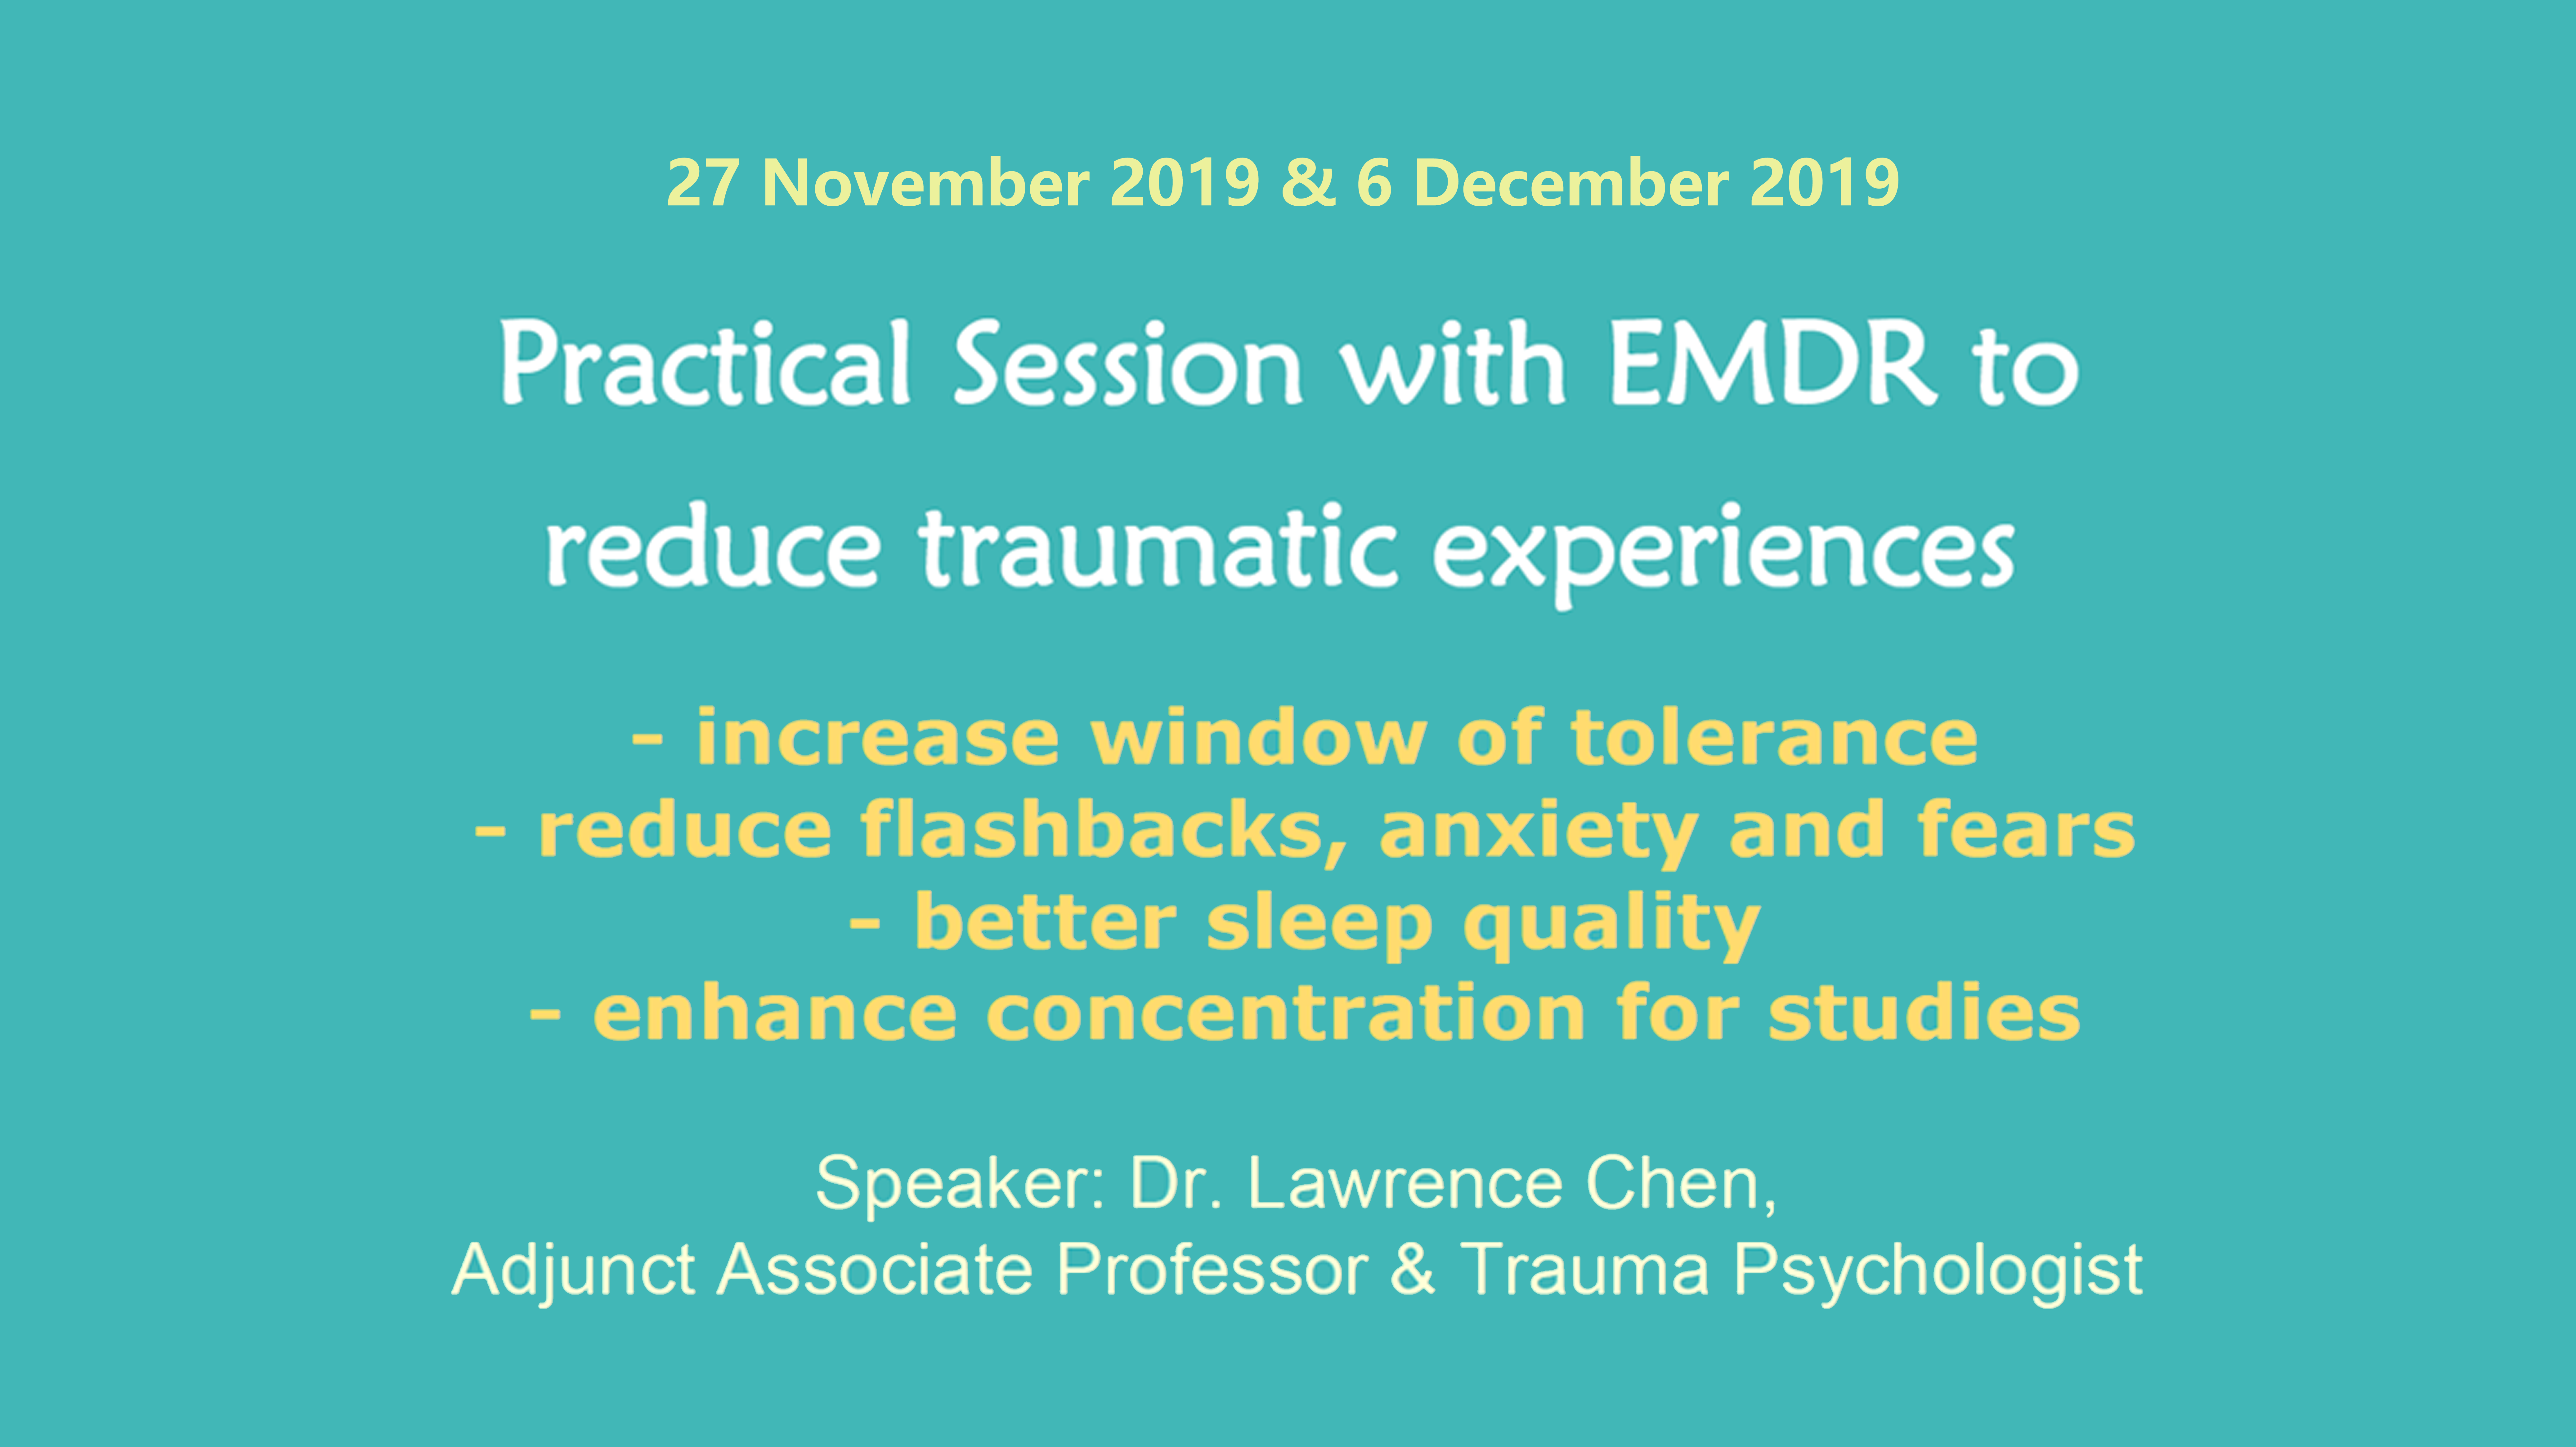 Practical Session with EMDR to reduce traumatic experiences